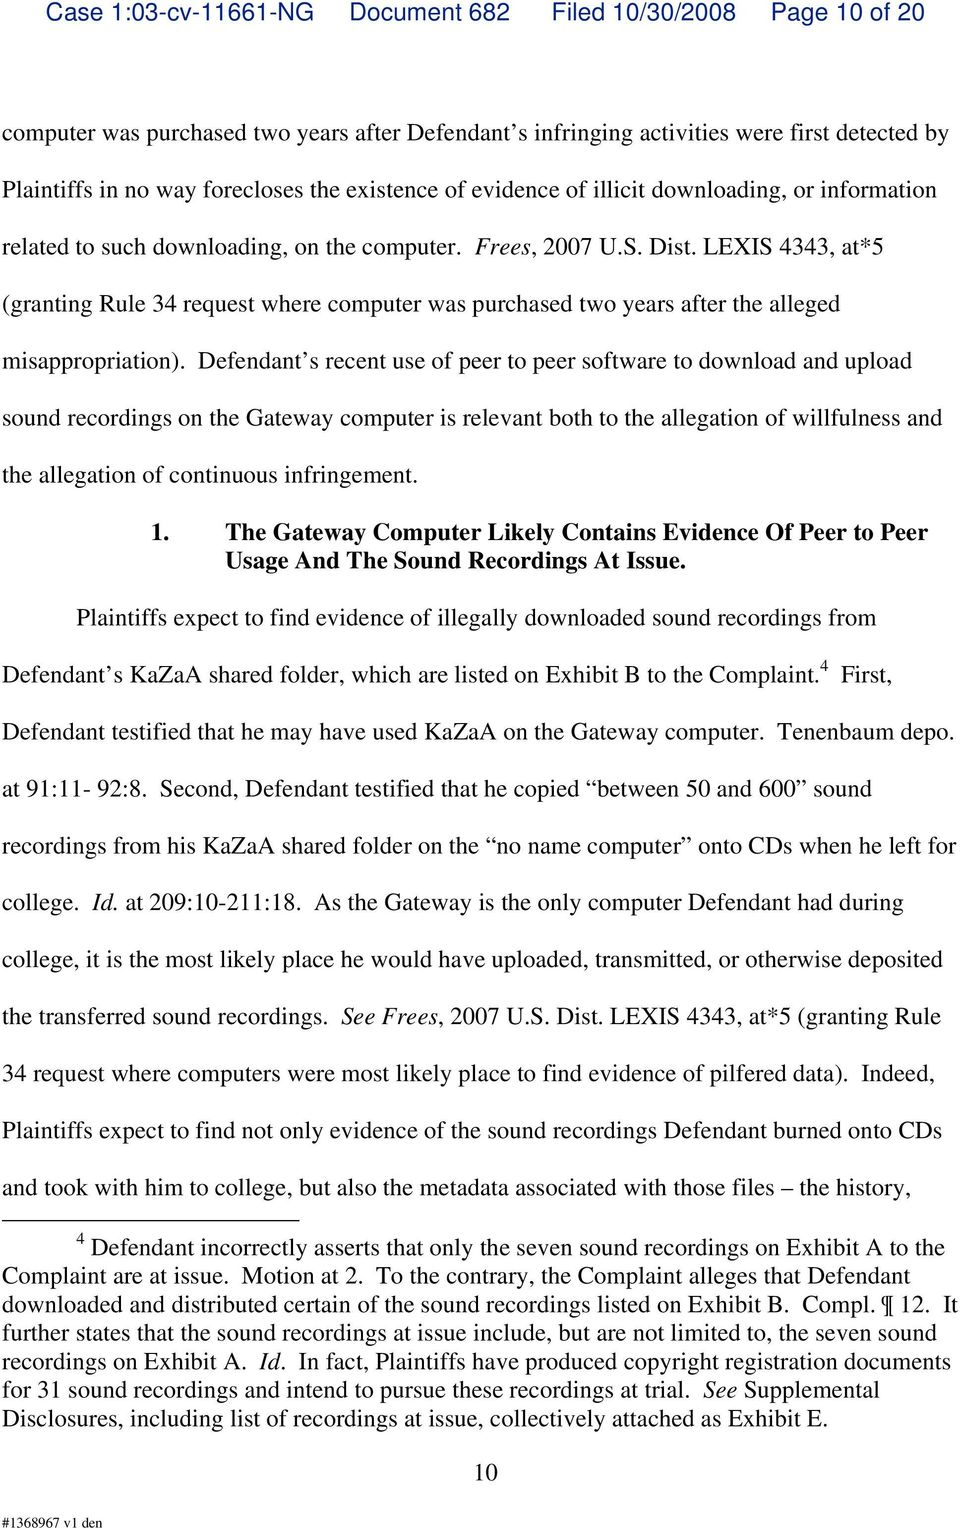 LEXIS 4343, at*5 (granting Rule 34 request where computer was purchased two years after the alleged misappropriation).